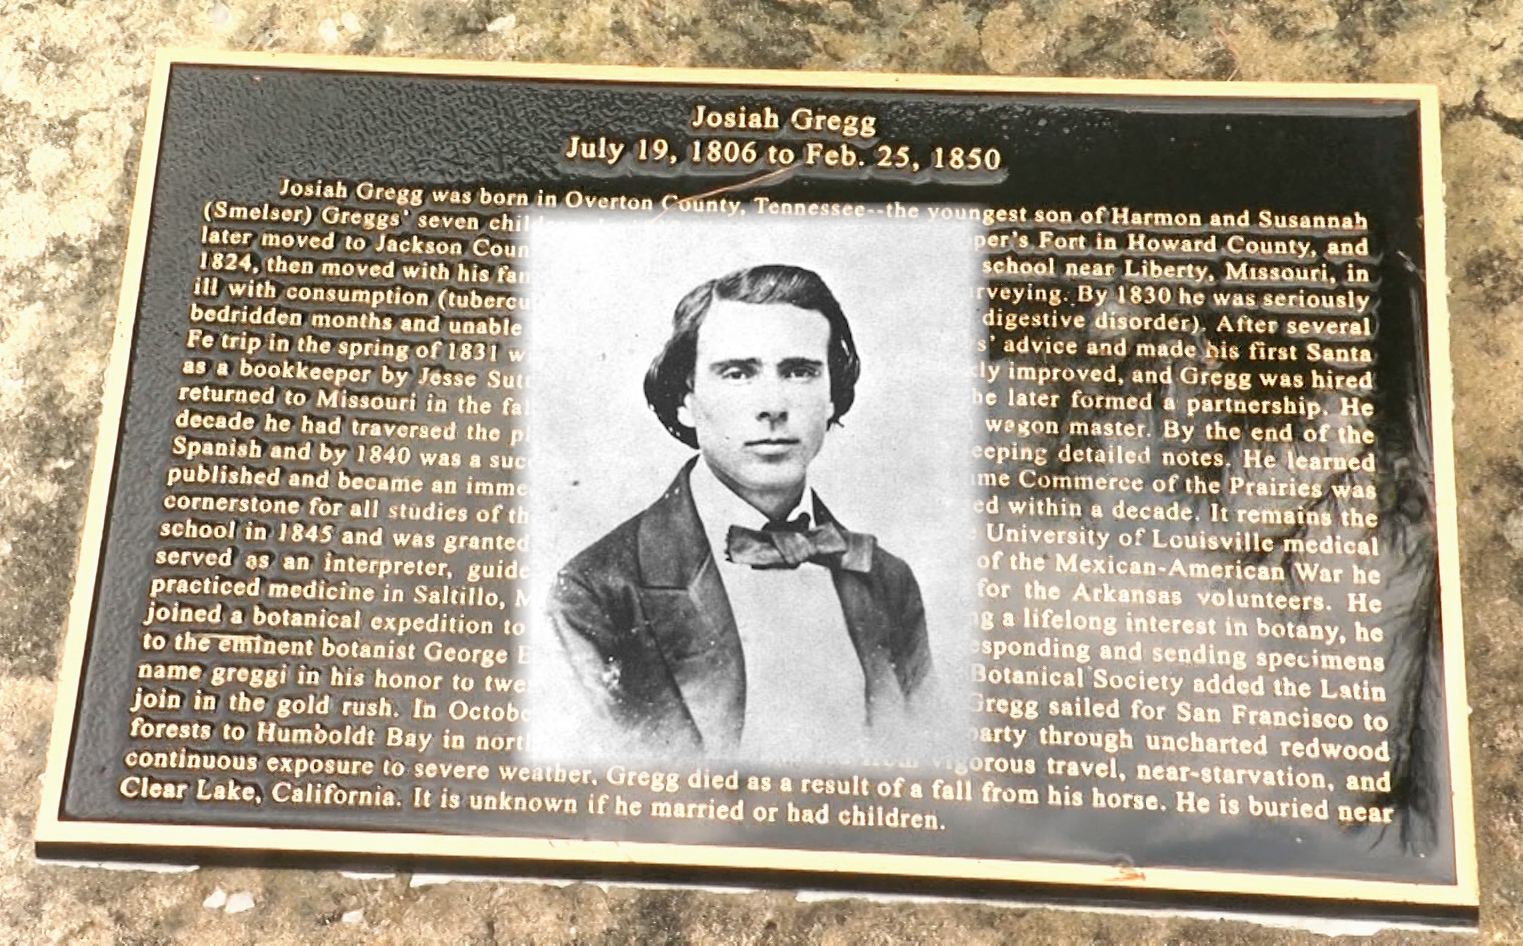 Josiah Gregg was an early merchant who traveled the Santa Fe Trail and published a book about his travels. (Photo by Dave Kendall)